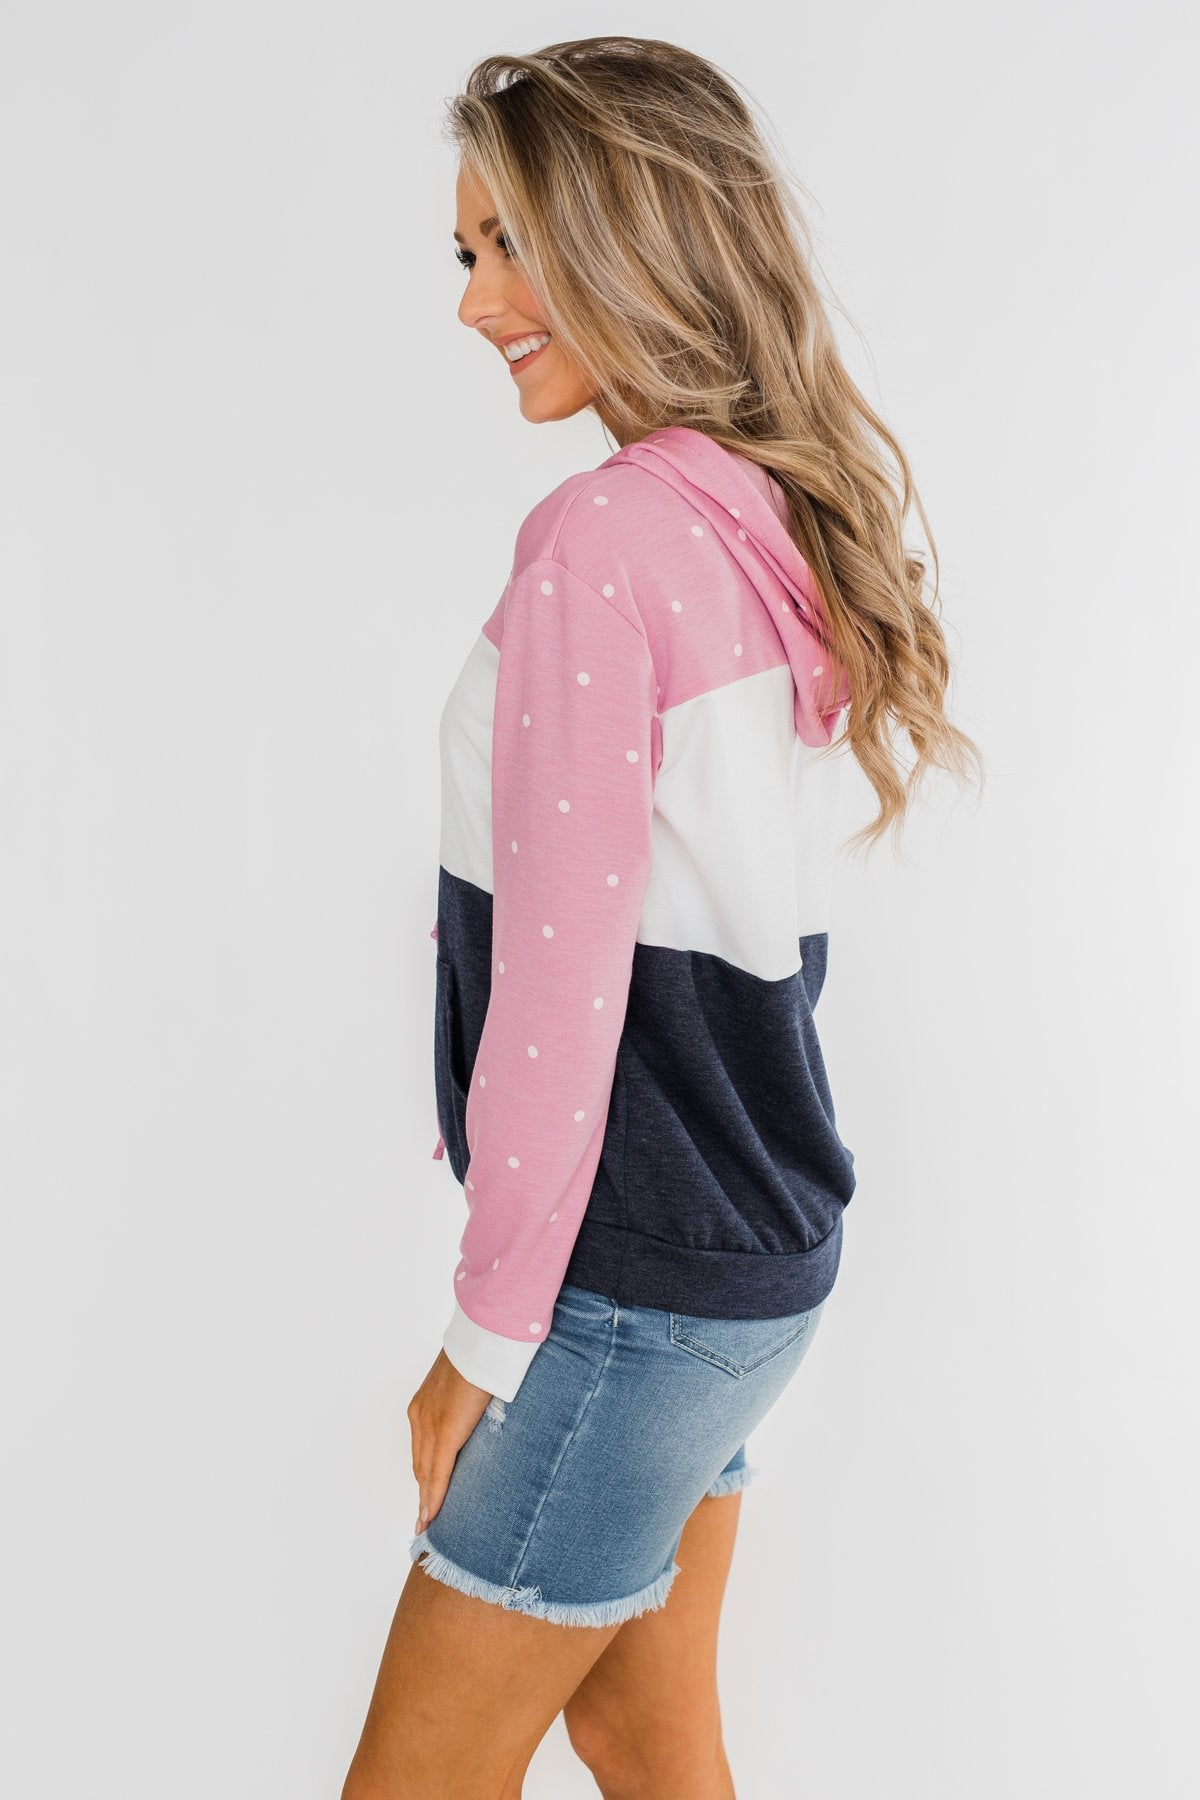 Come With Me Polka Dot Color Block Hoodie- Pink & Navy